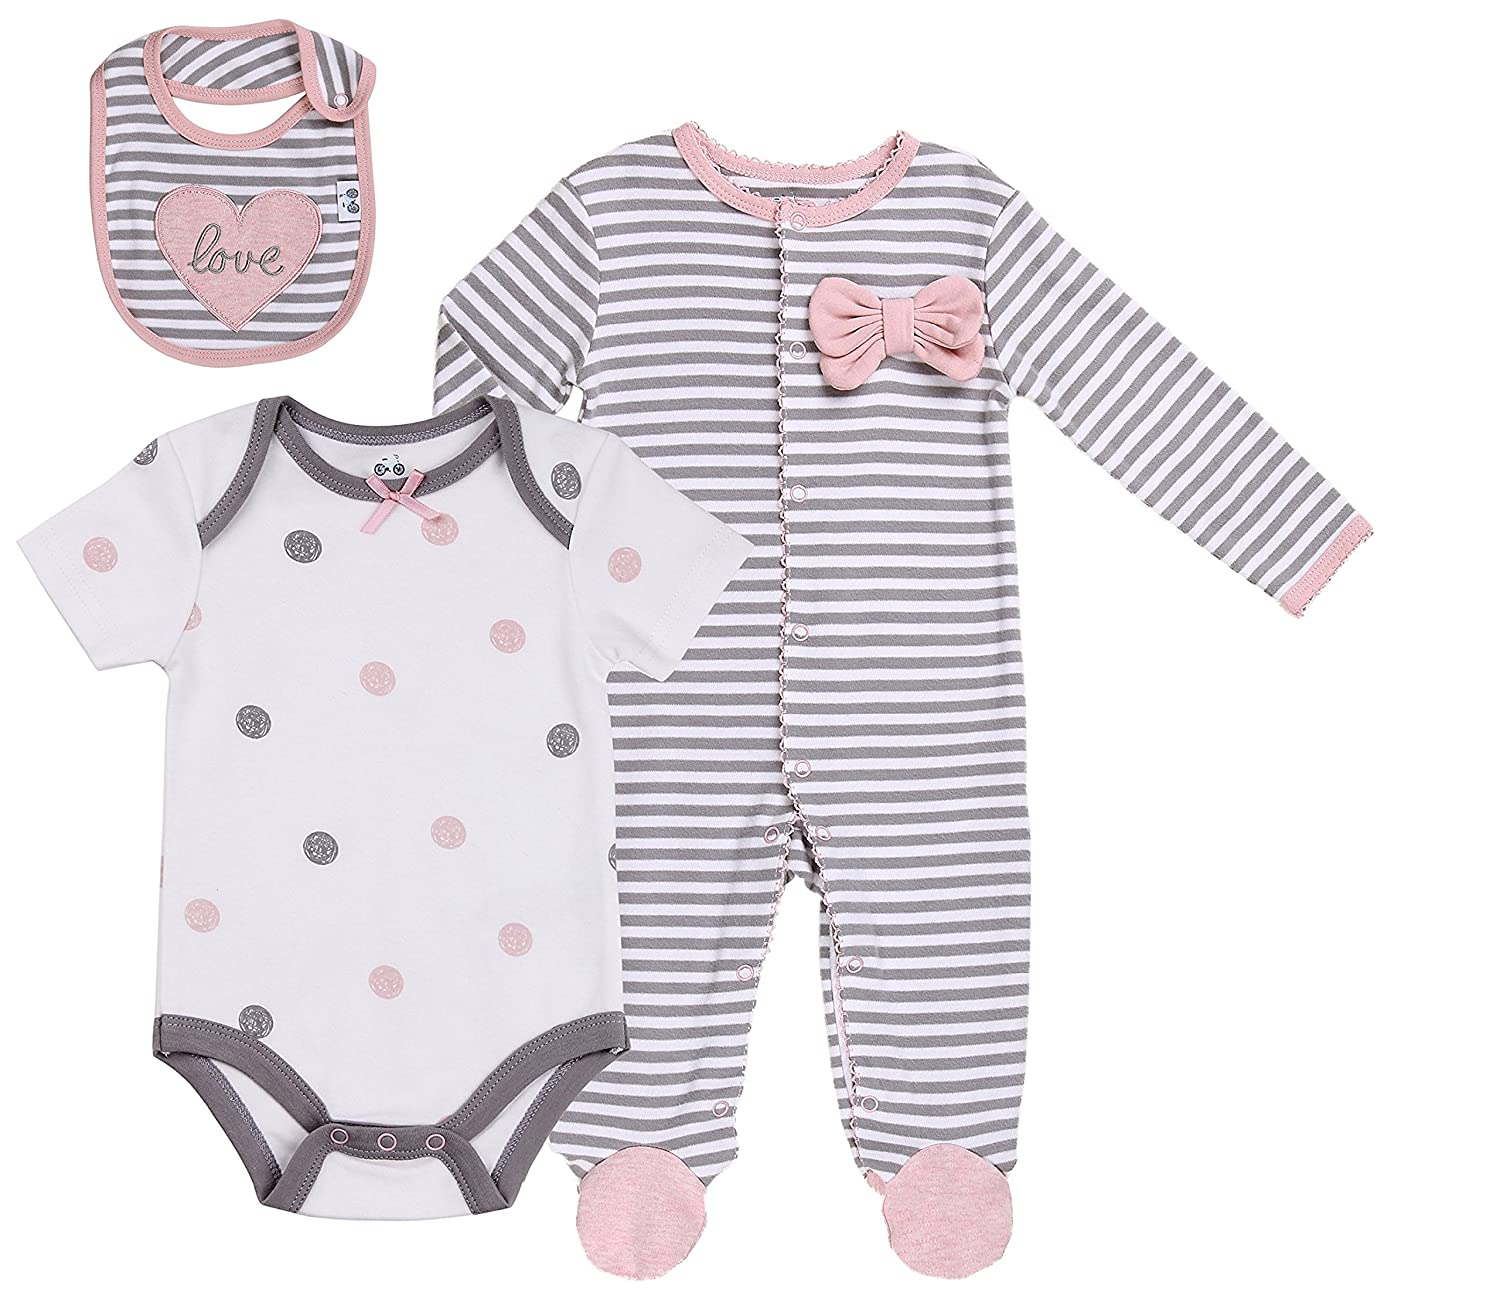 即納!最大半額! Asher SLEEPWEAR and Olivia SLEEPWEAR ベビーガールズ 12 Months 12 B077Y2NNVZ Dusty Rose Pink B077Y2NNVZ, イオンの通信販売サクワ:6f233024 --- a0267596.xsph.ru